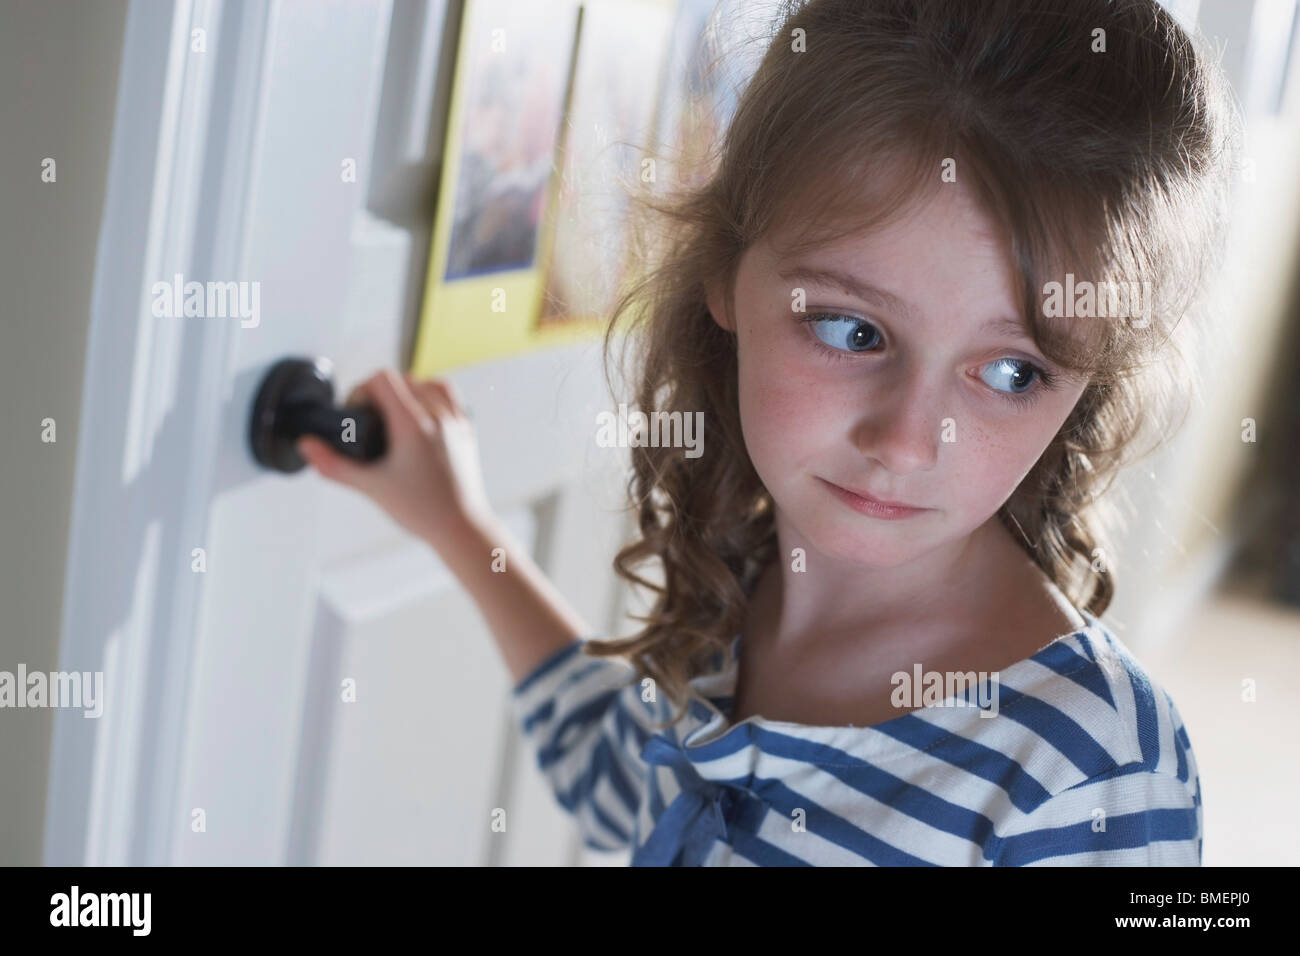 A Girl Turning A Doorknob To Leave - Stock Image